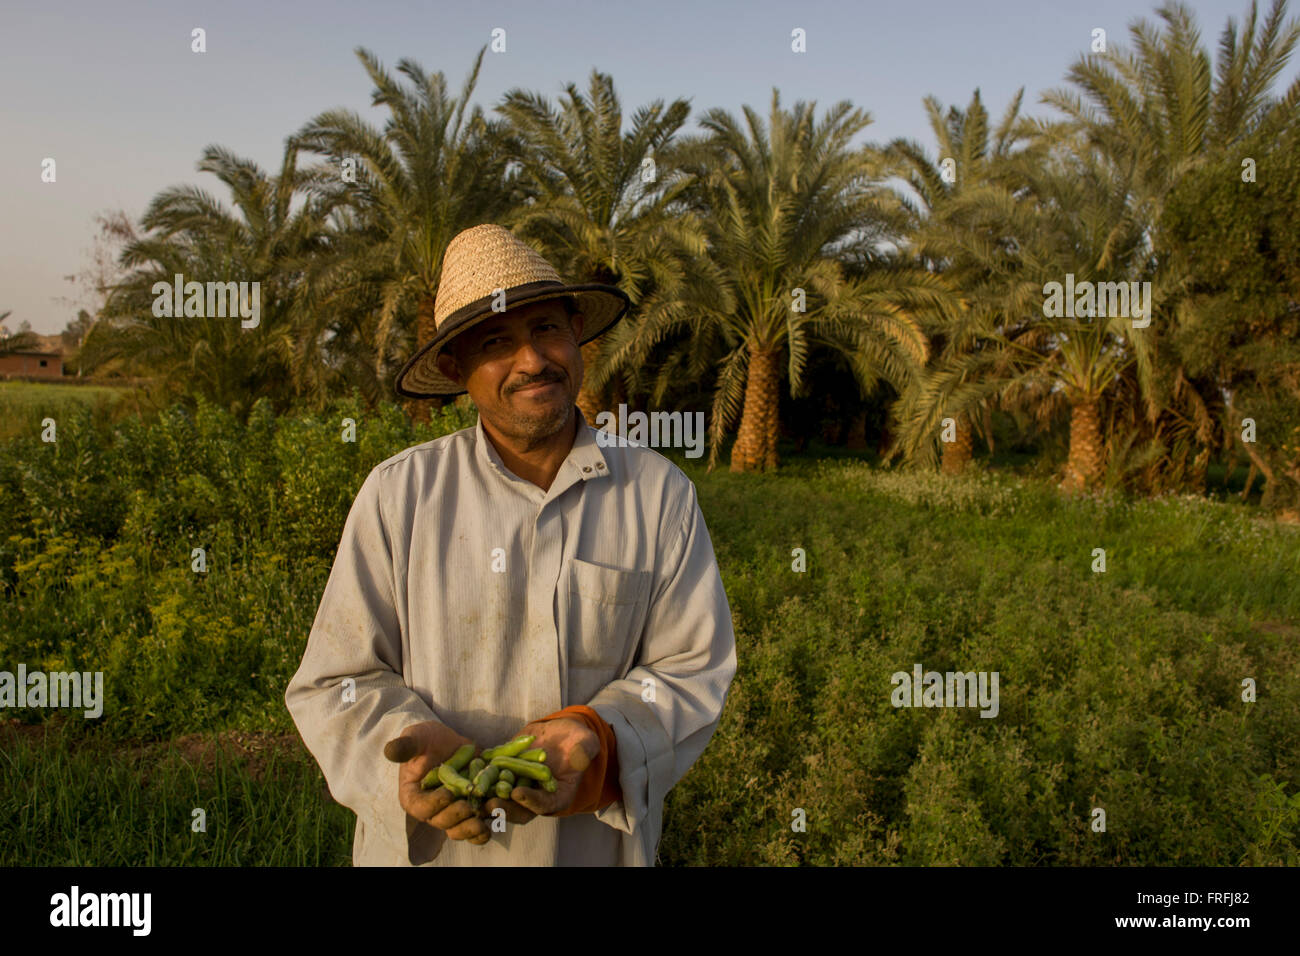 a-farmer-holds-a-crop-of-green-beans-in-